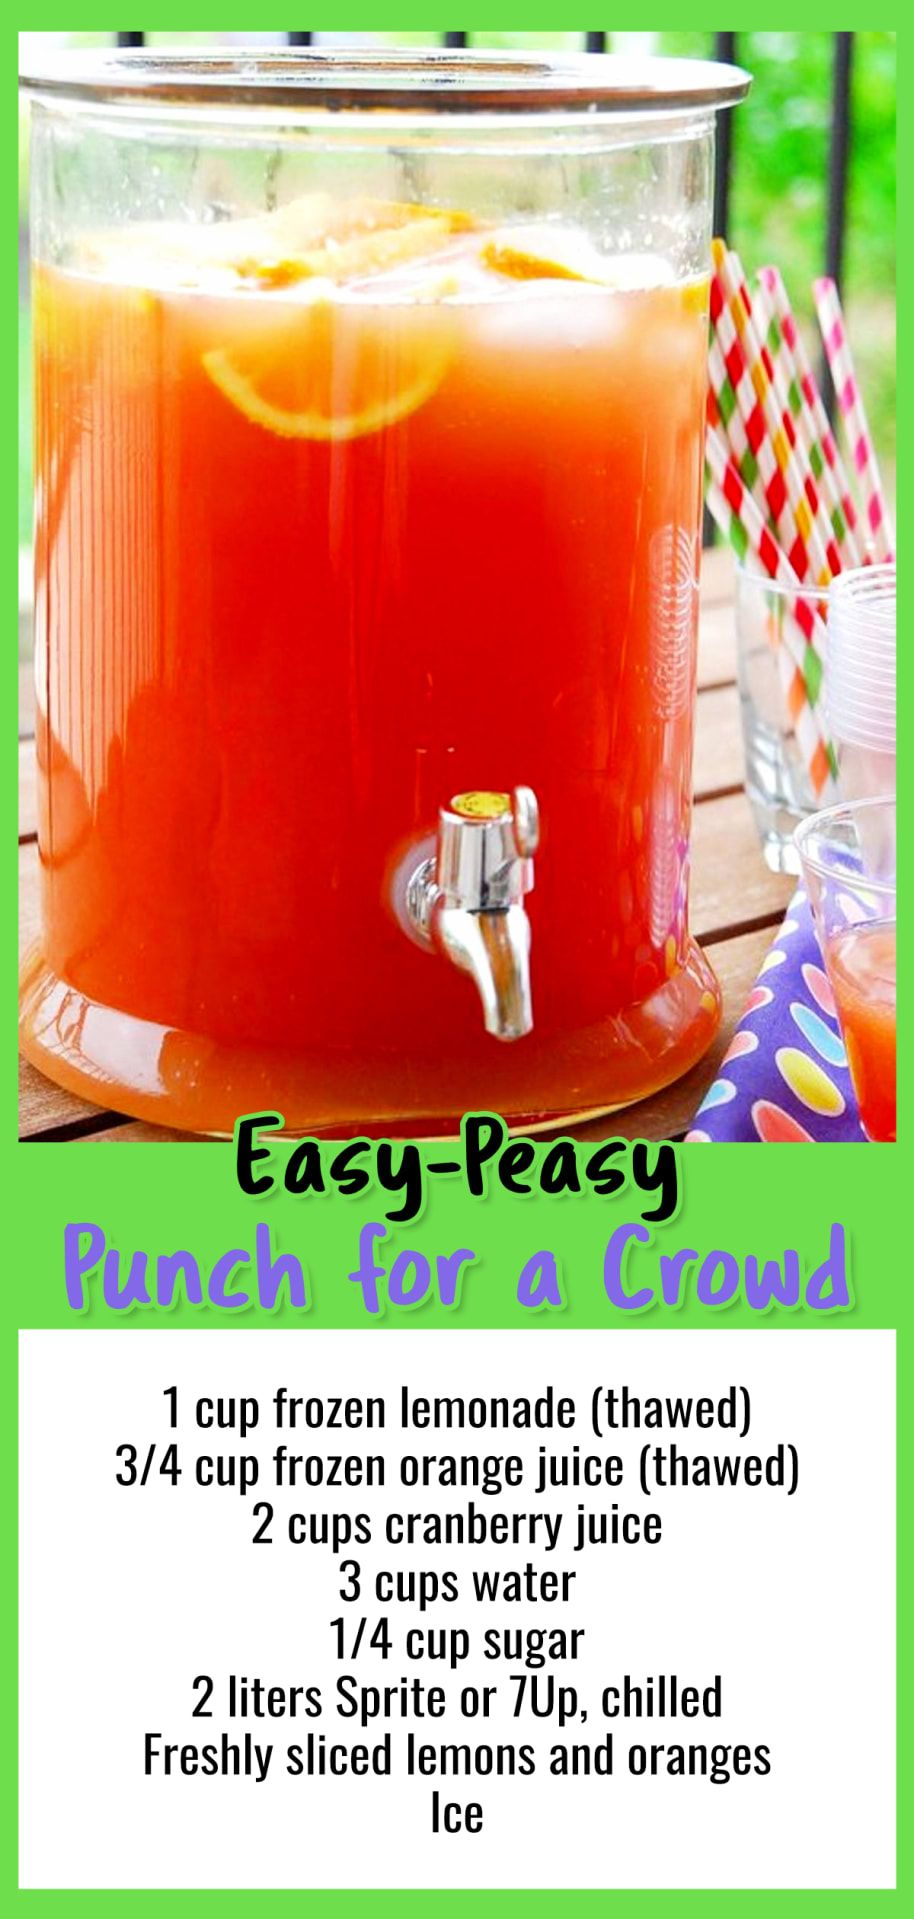 7 Easy Punch Recipes For a Crowd - Simple Party Drinks Ideas (both NonAlcoholic and With Alcohol #vodkapunch